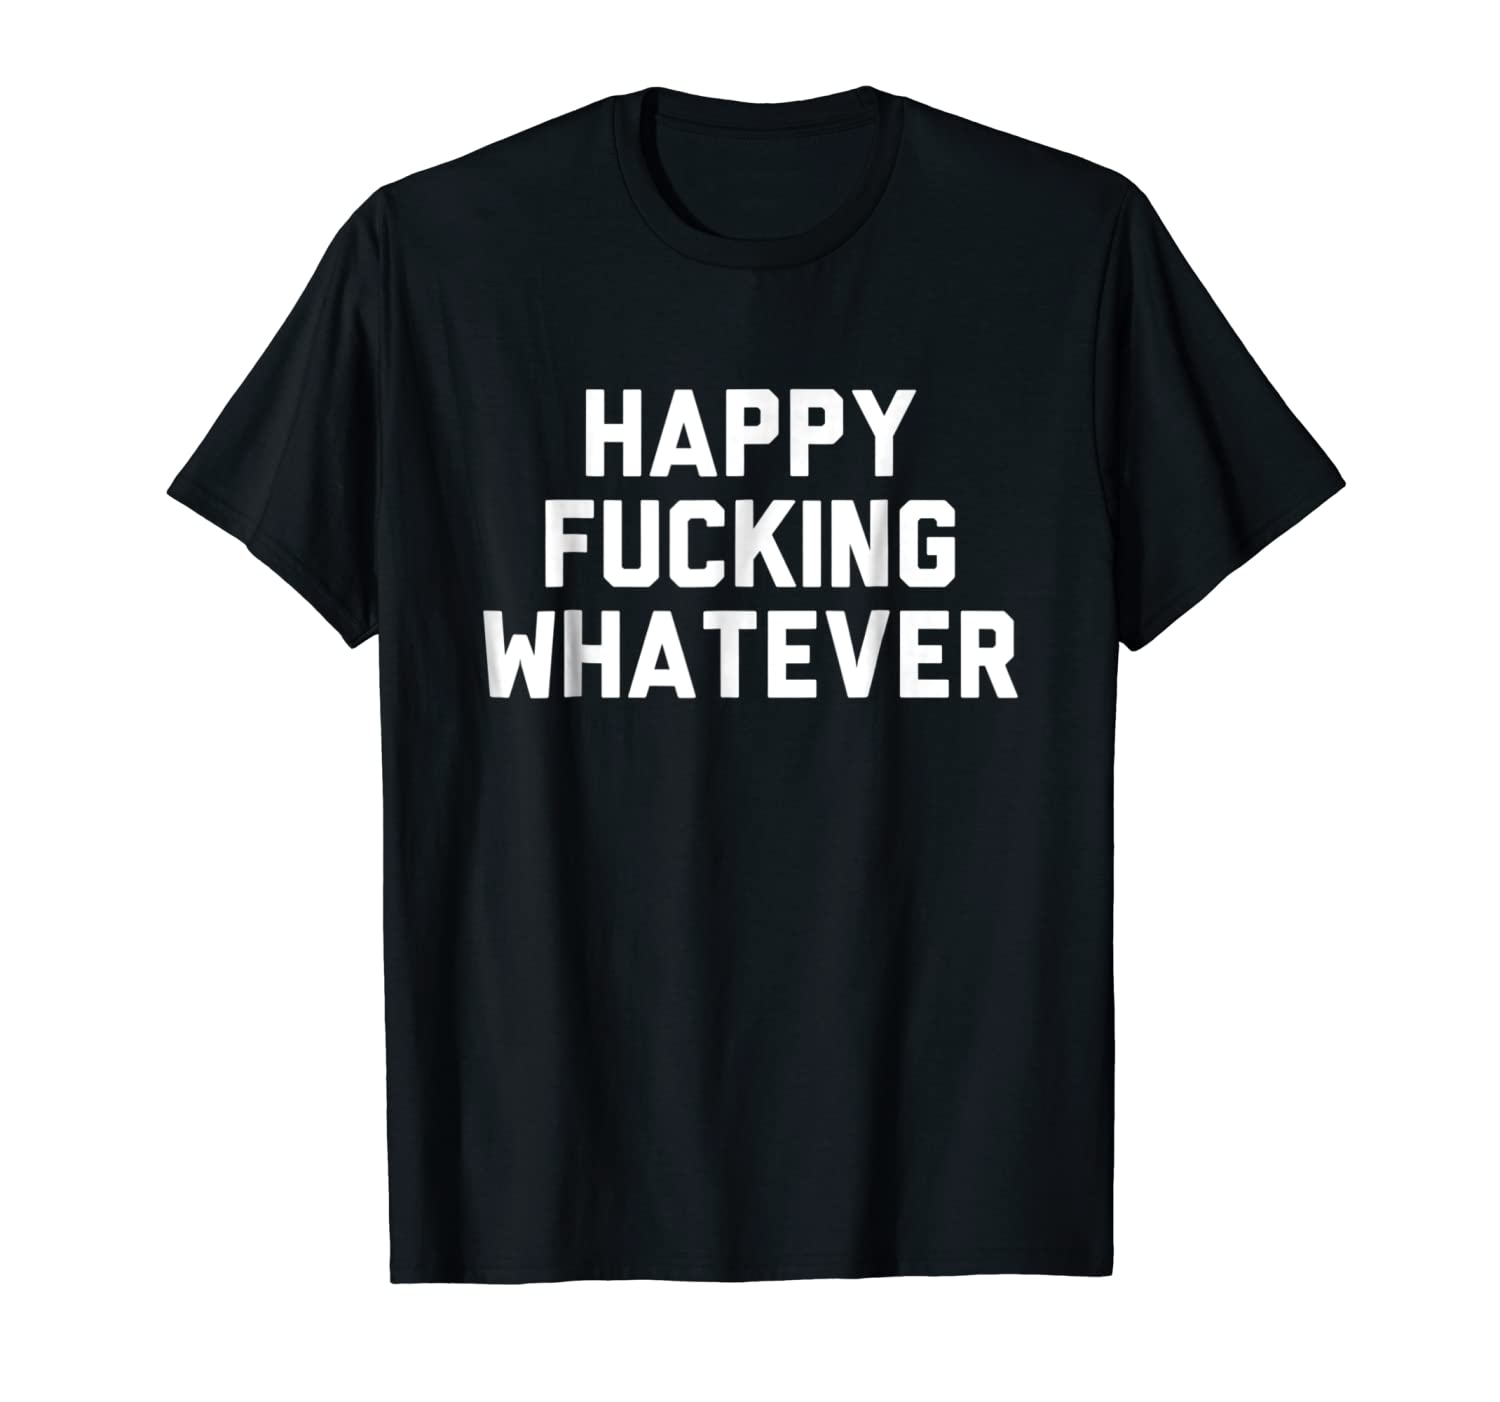 Funny Sarcastic Shirts happy fucking whatever Shirt